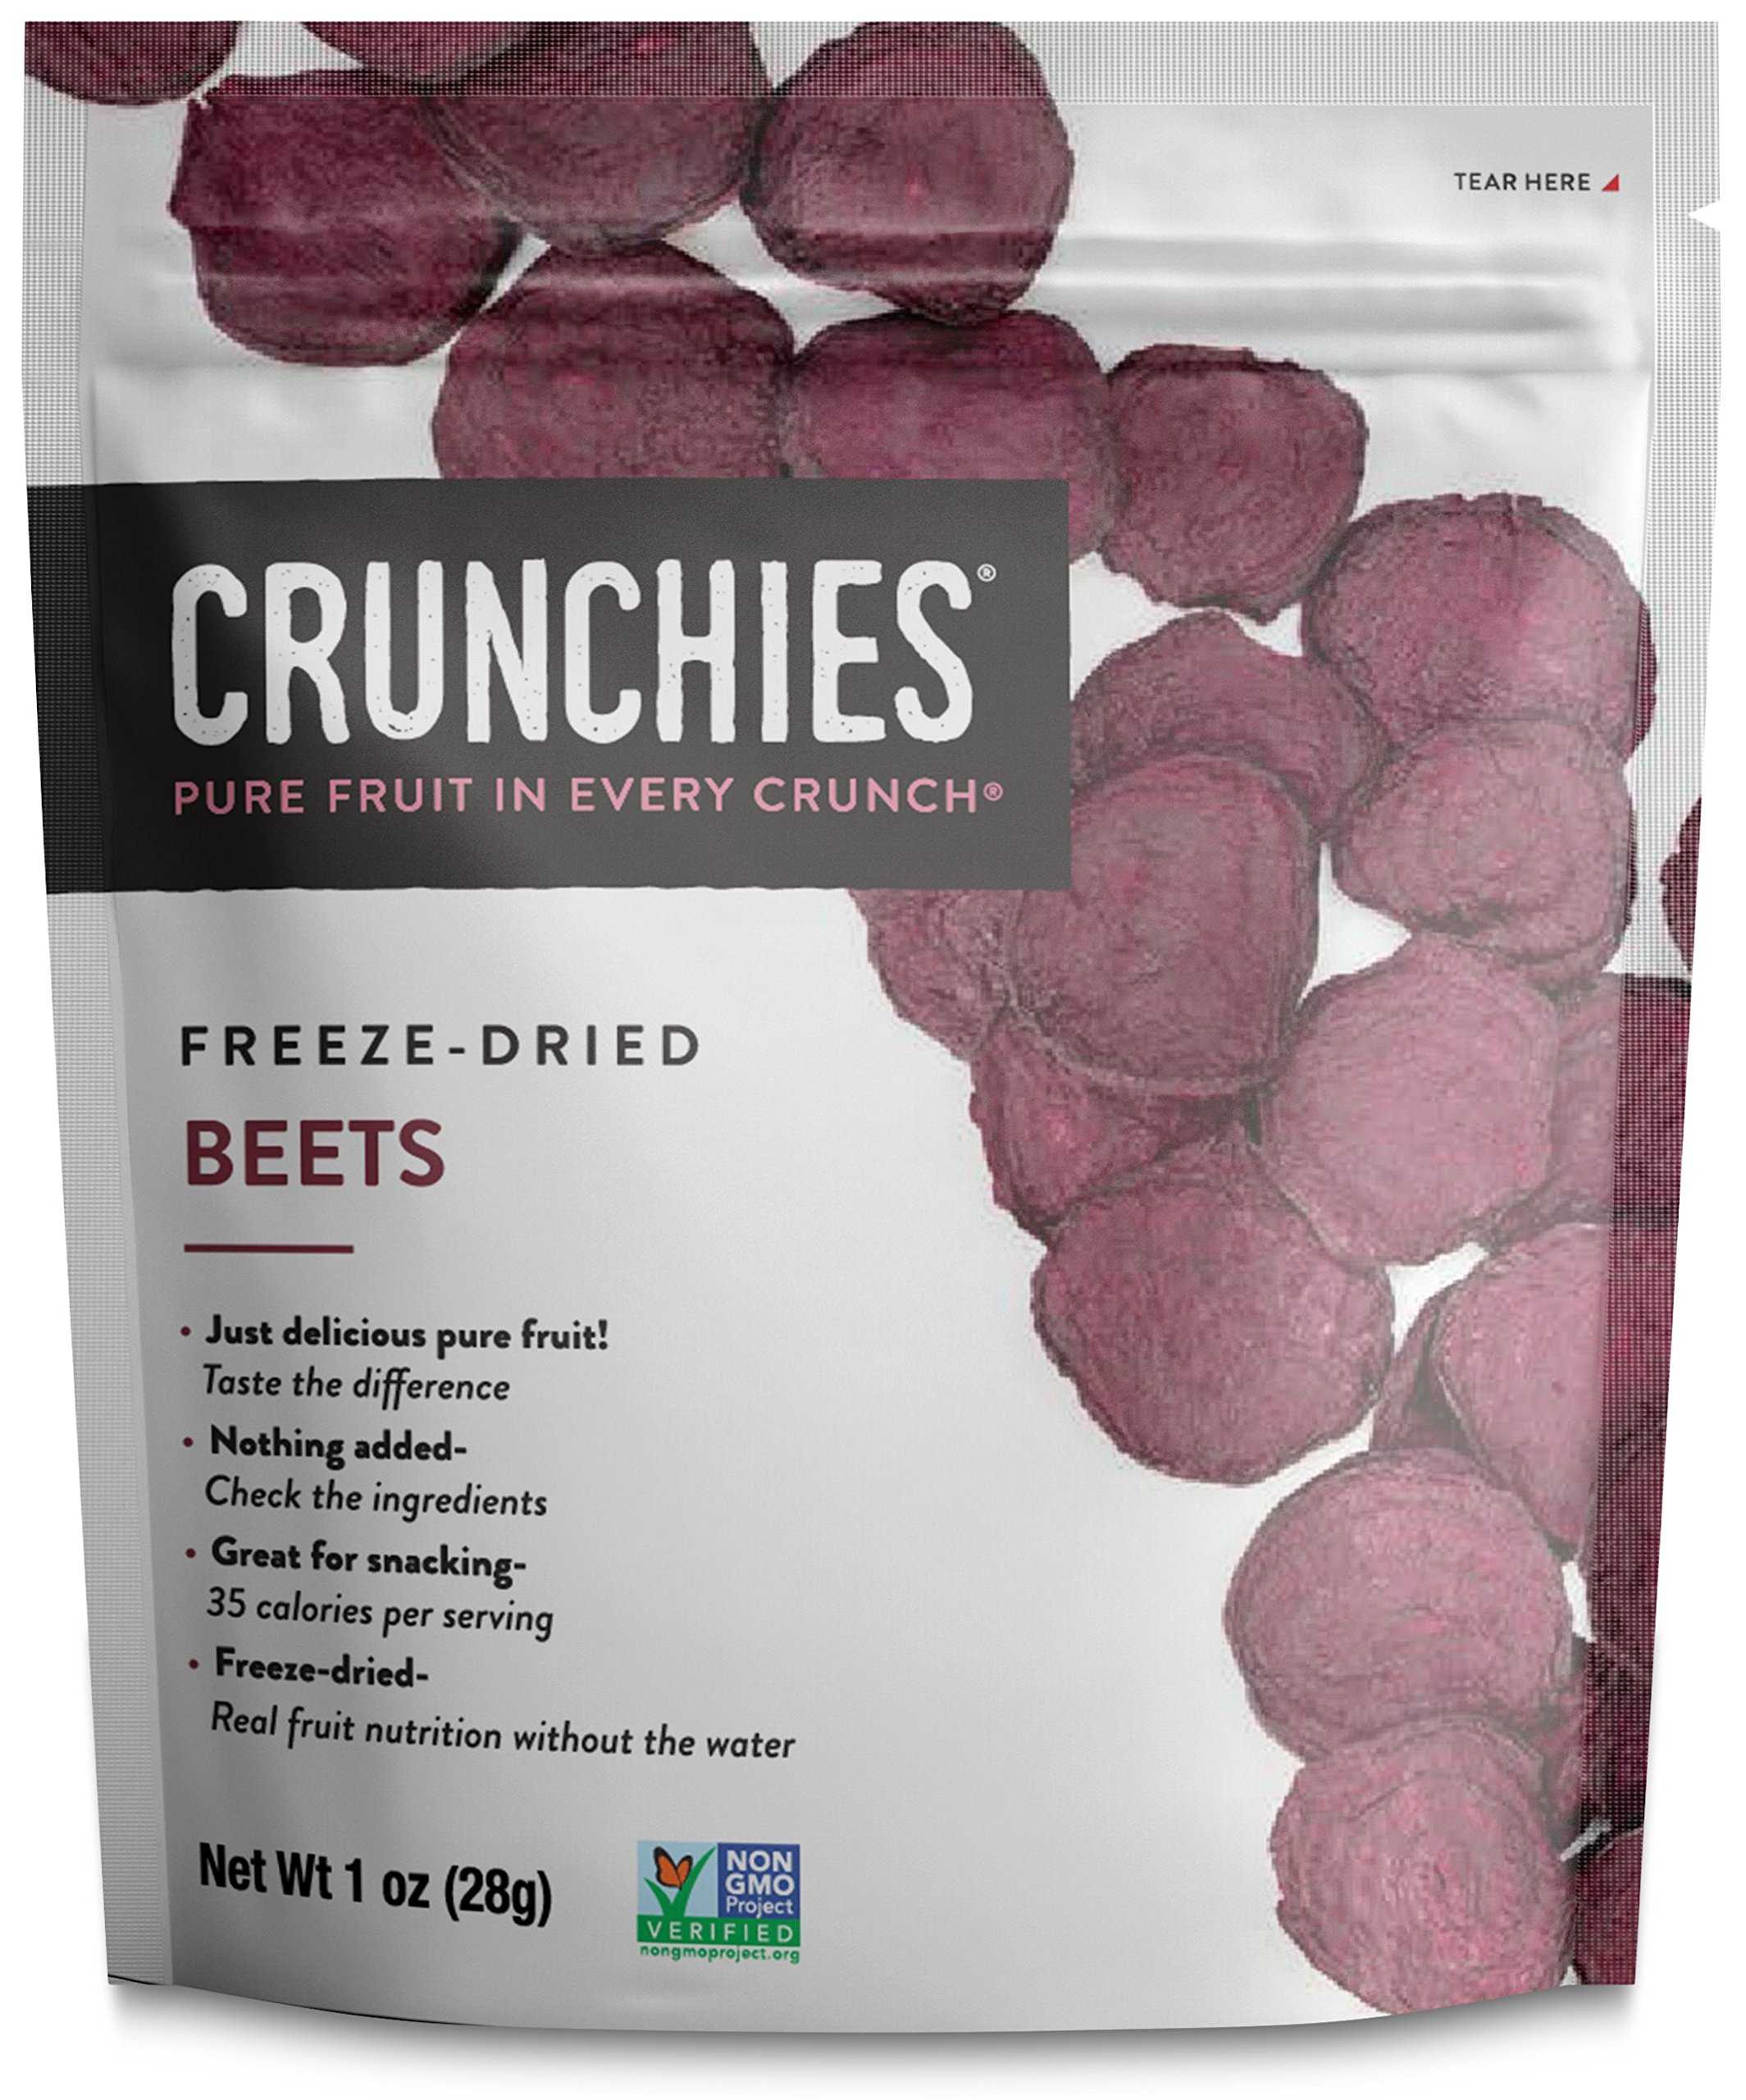 Crunchies Crispy 100% All Natural Freeze-Dried Fruits, 1 Ounce (6 Snack Packs) (Beets)